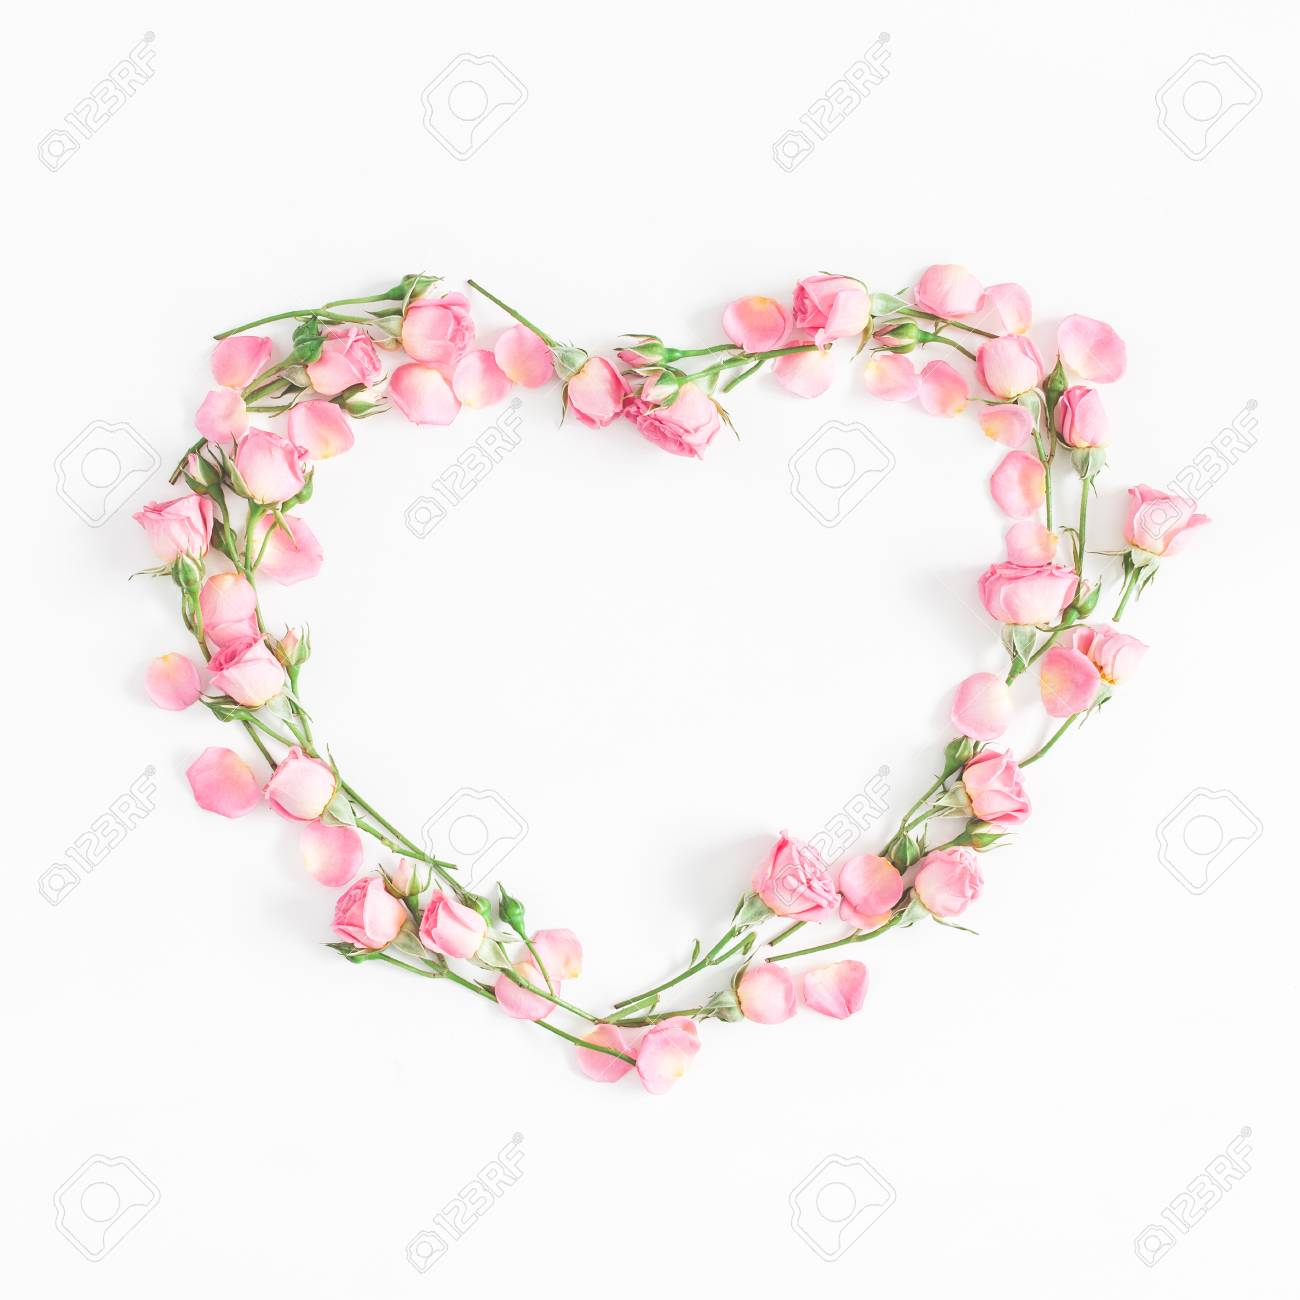 Flowers composition. Heart symbol made of pink rose flowers on white background. Flat lay, top view, copy space, square - 94033564